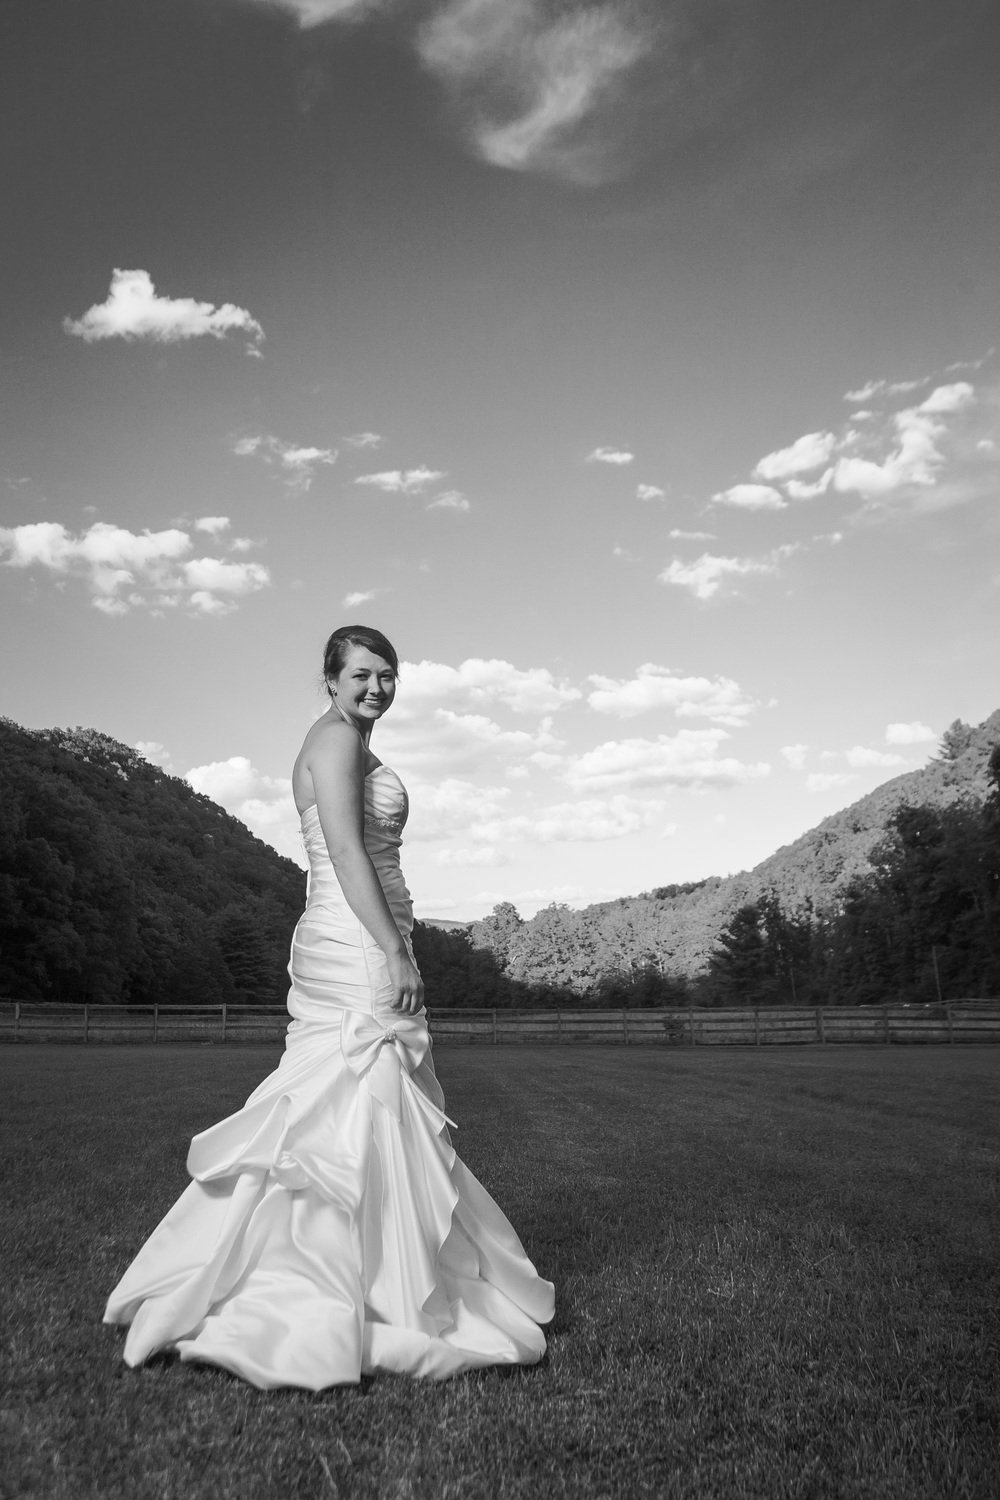 Posed bride in a valley in black and white camp alta mons shawsville, virginia